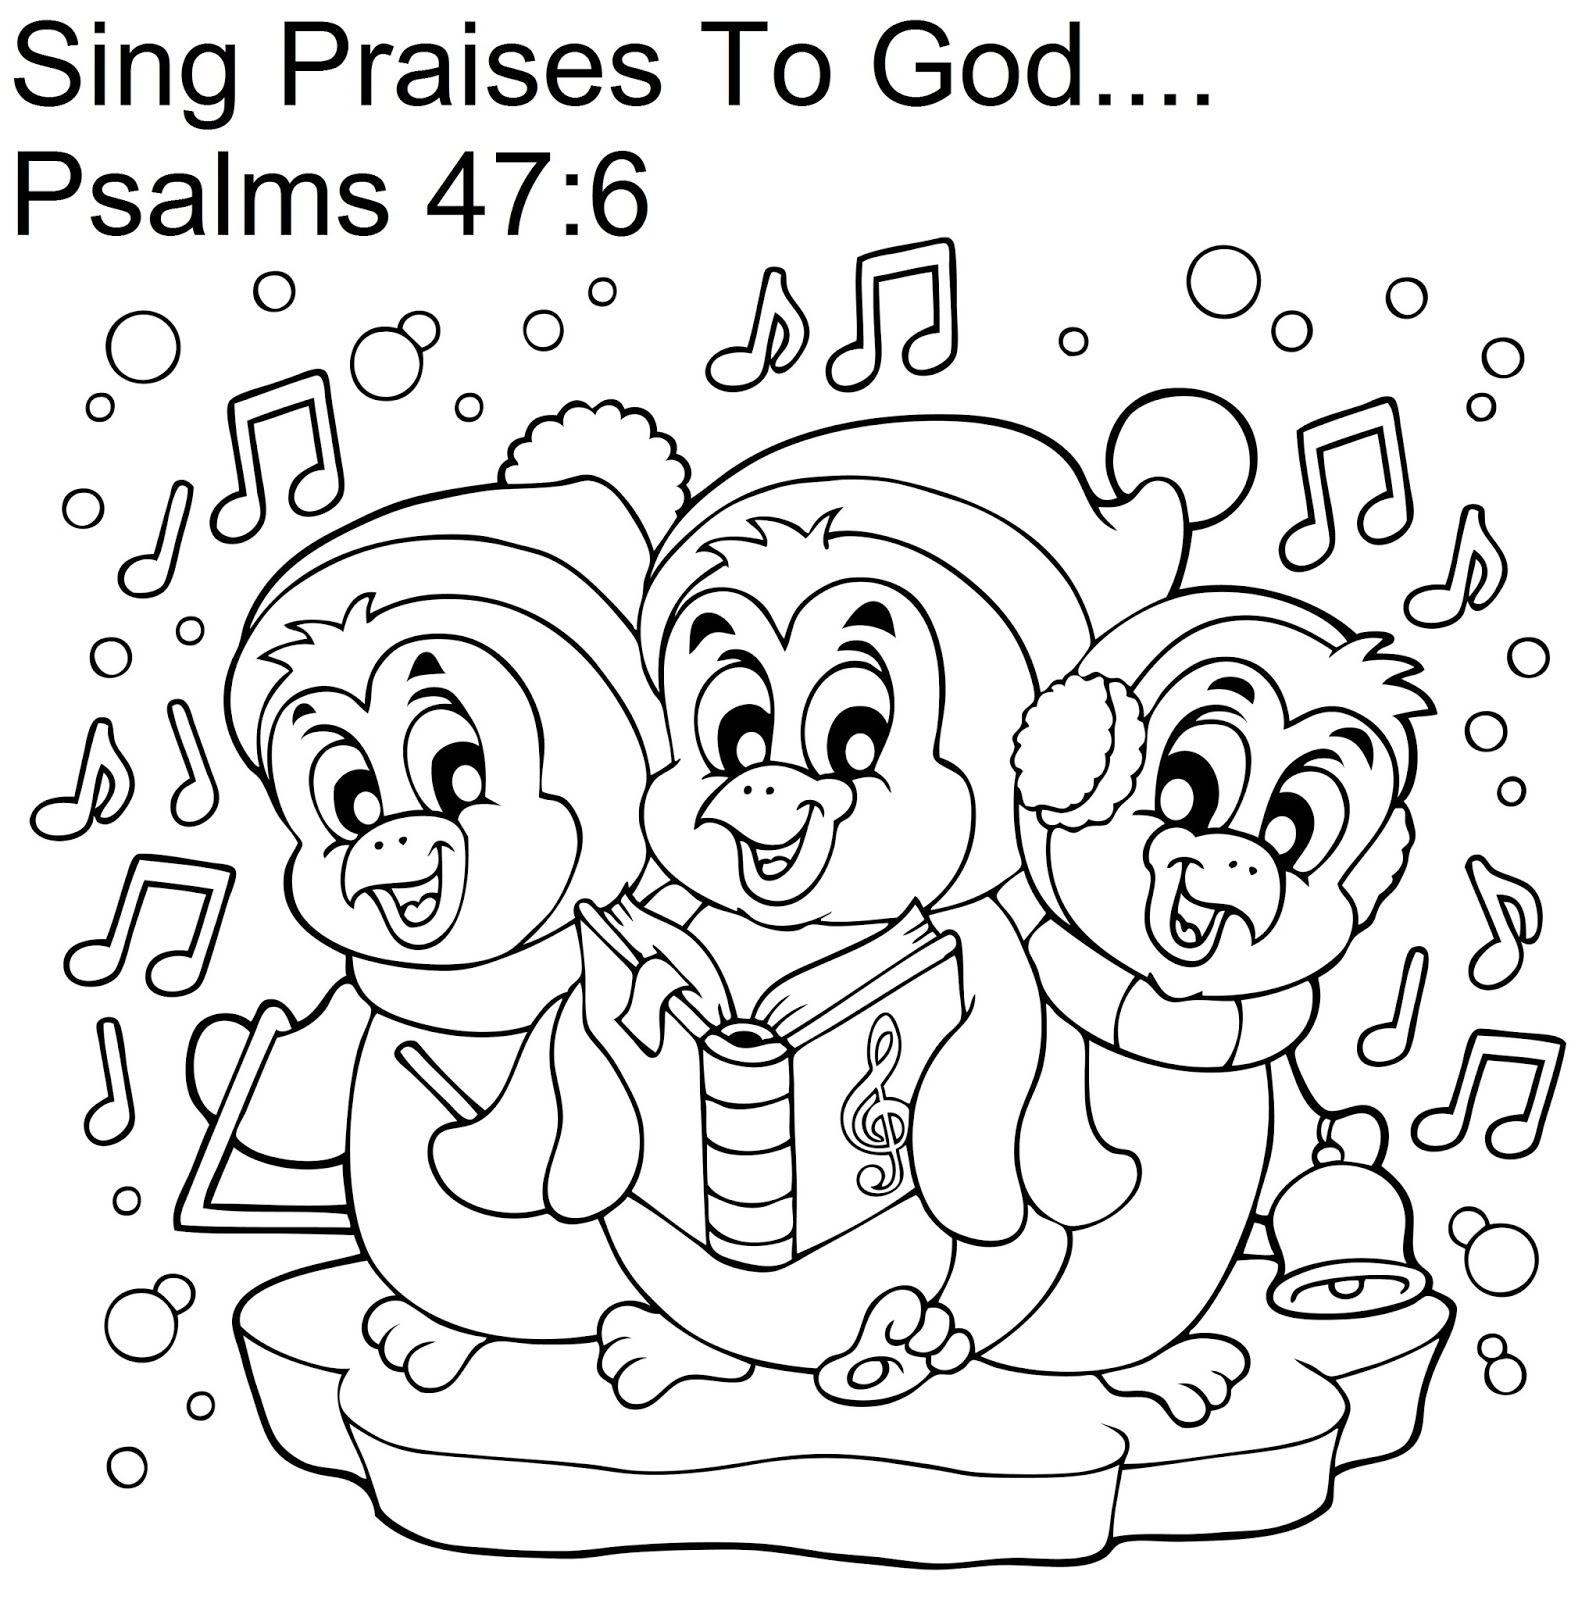 esther coloring sheet 01 4 also  furthermore Harp Puzzle also FileFolderPin in addition  furthermore jesus palm sunday coloring page horz in addition  furthermore  also  additionally rebekah besides . on noah christian coloring pages for preschoolers